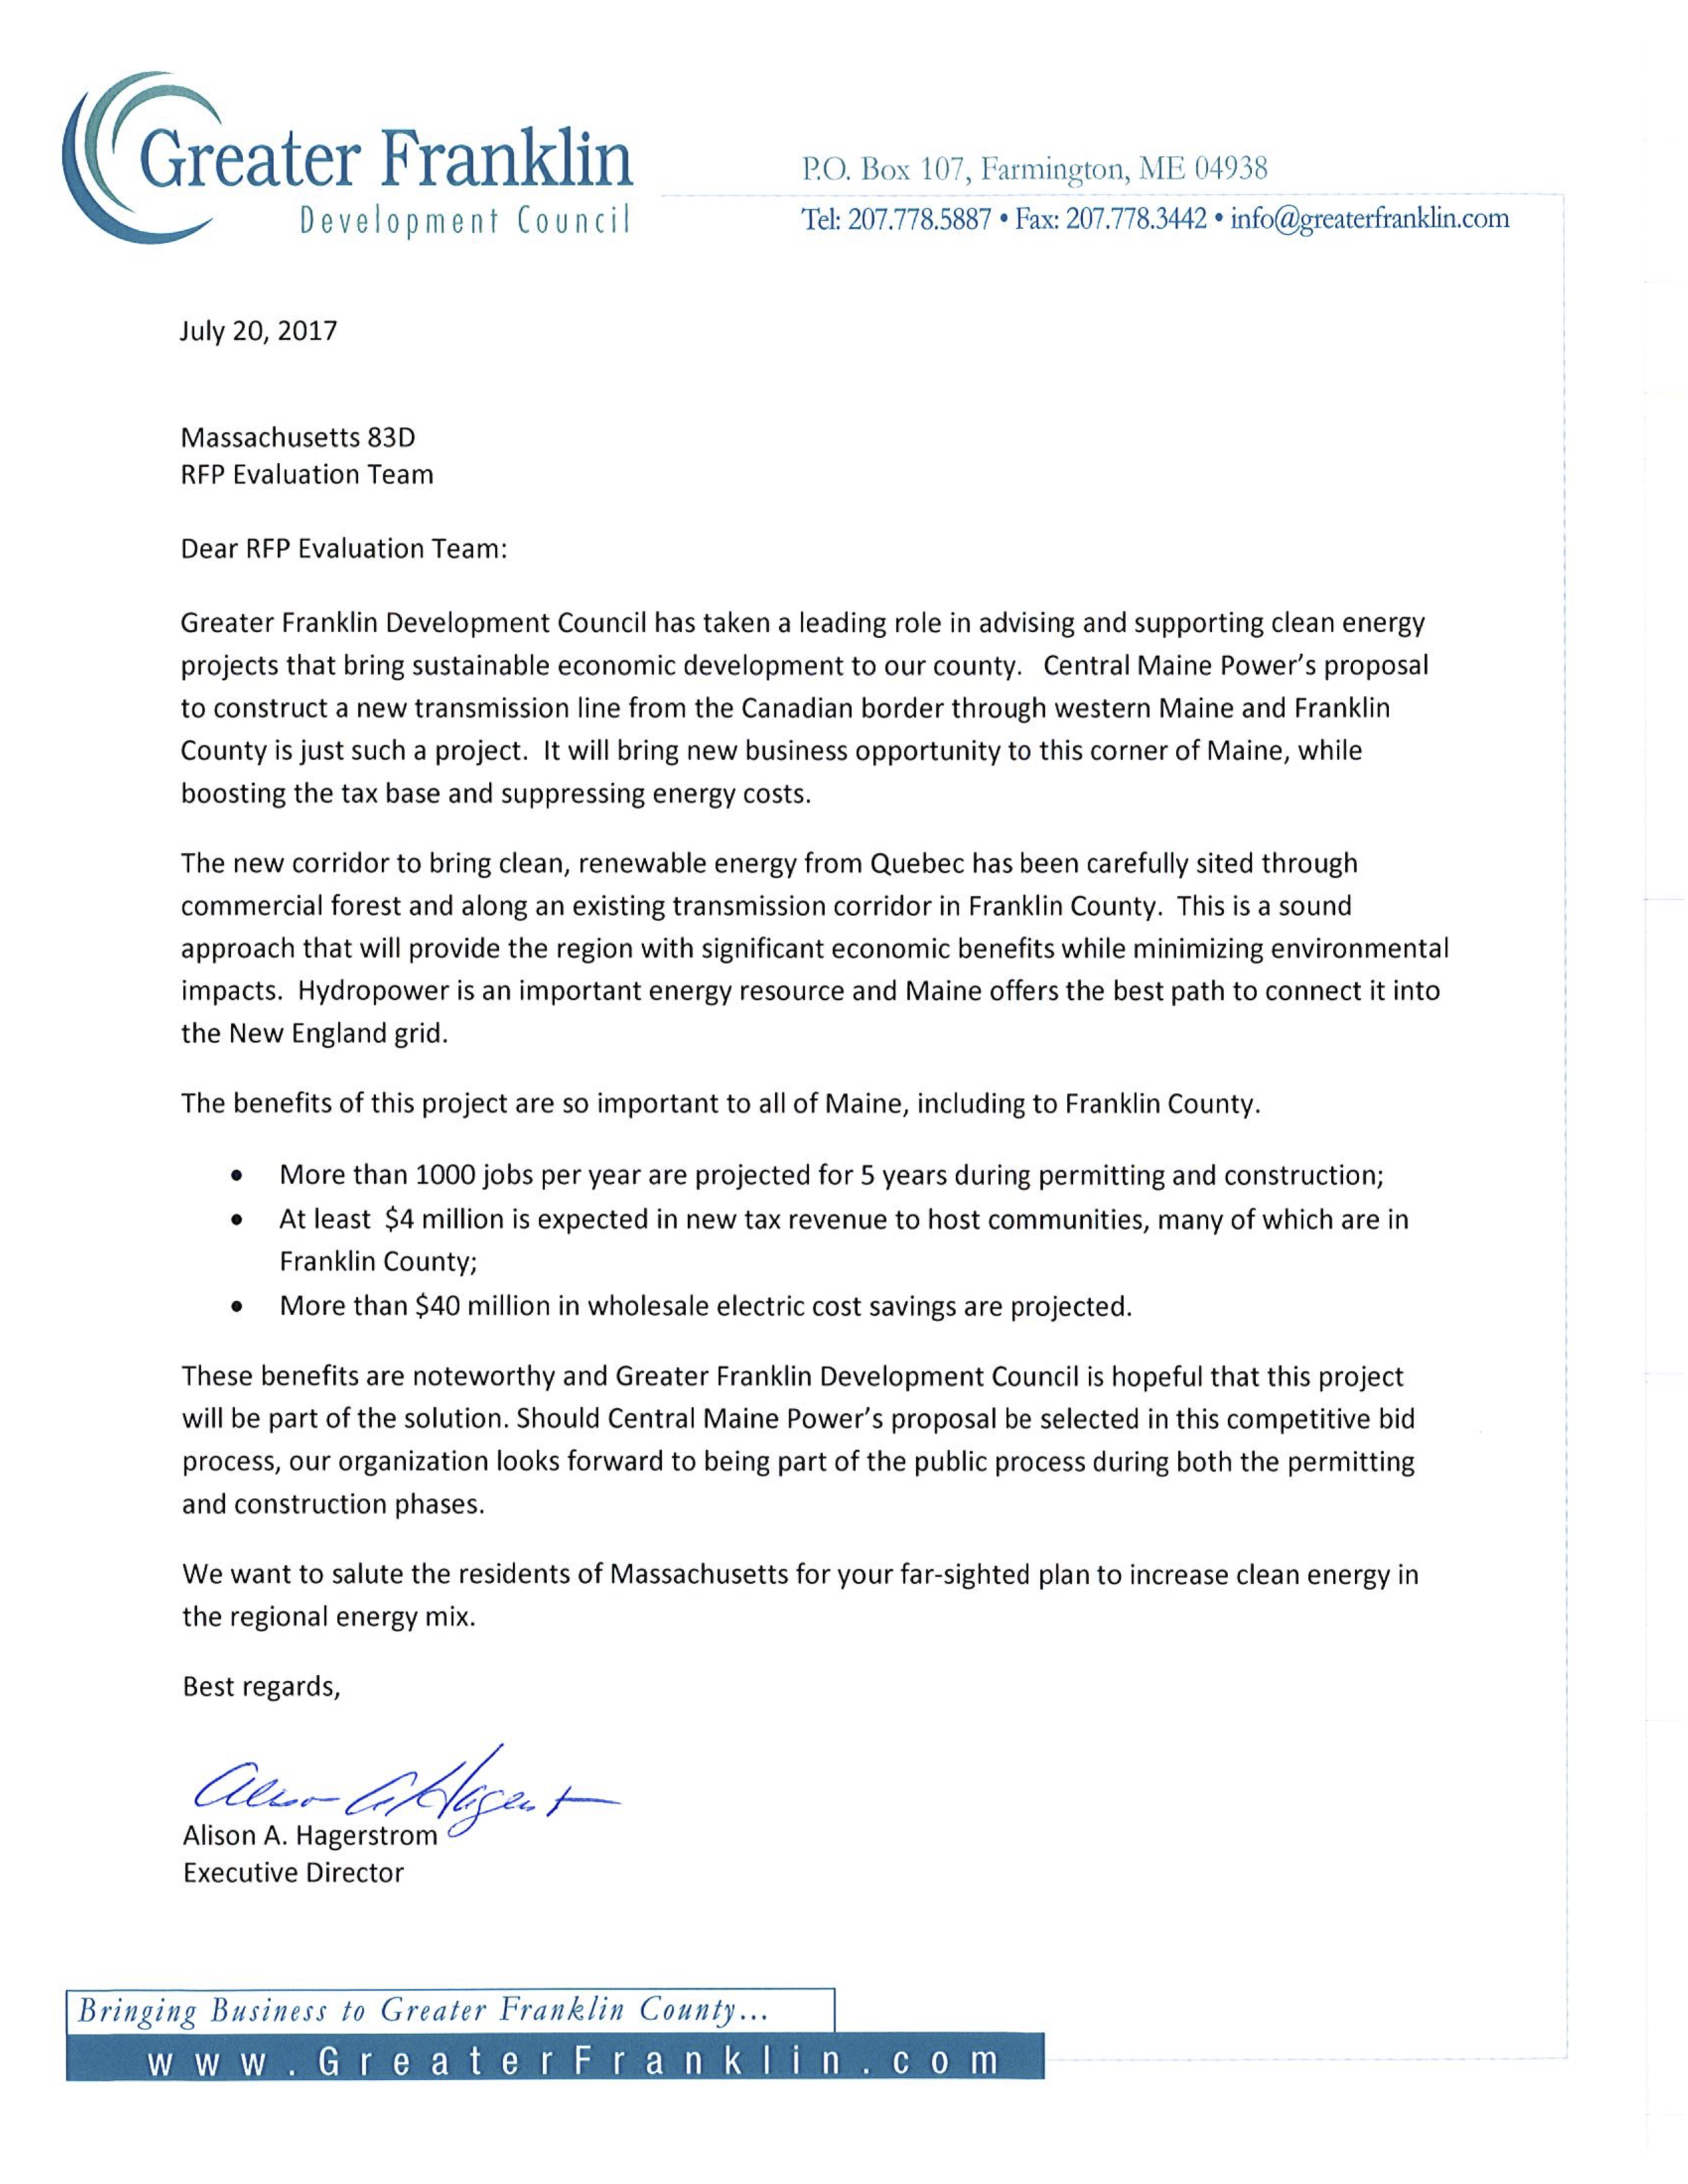 GFDC Support Letter.png